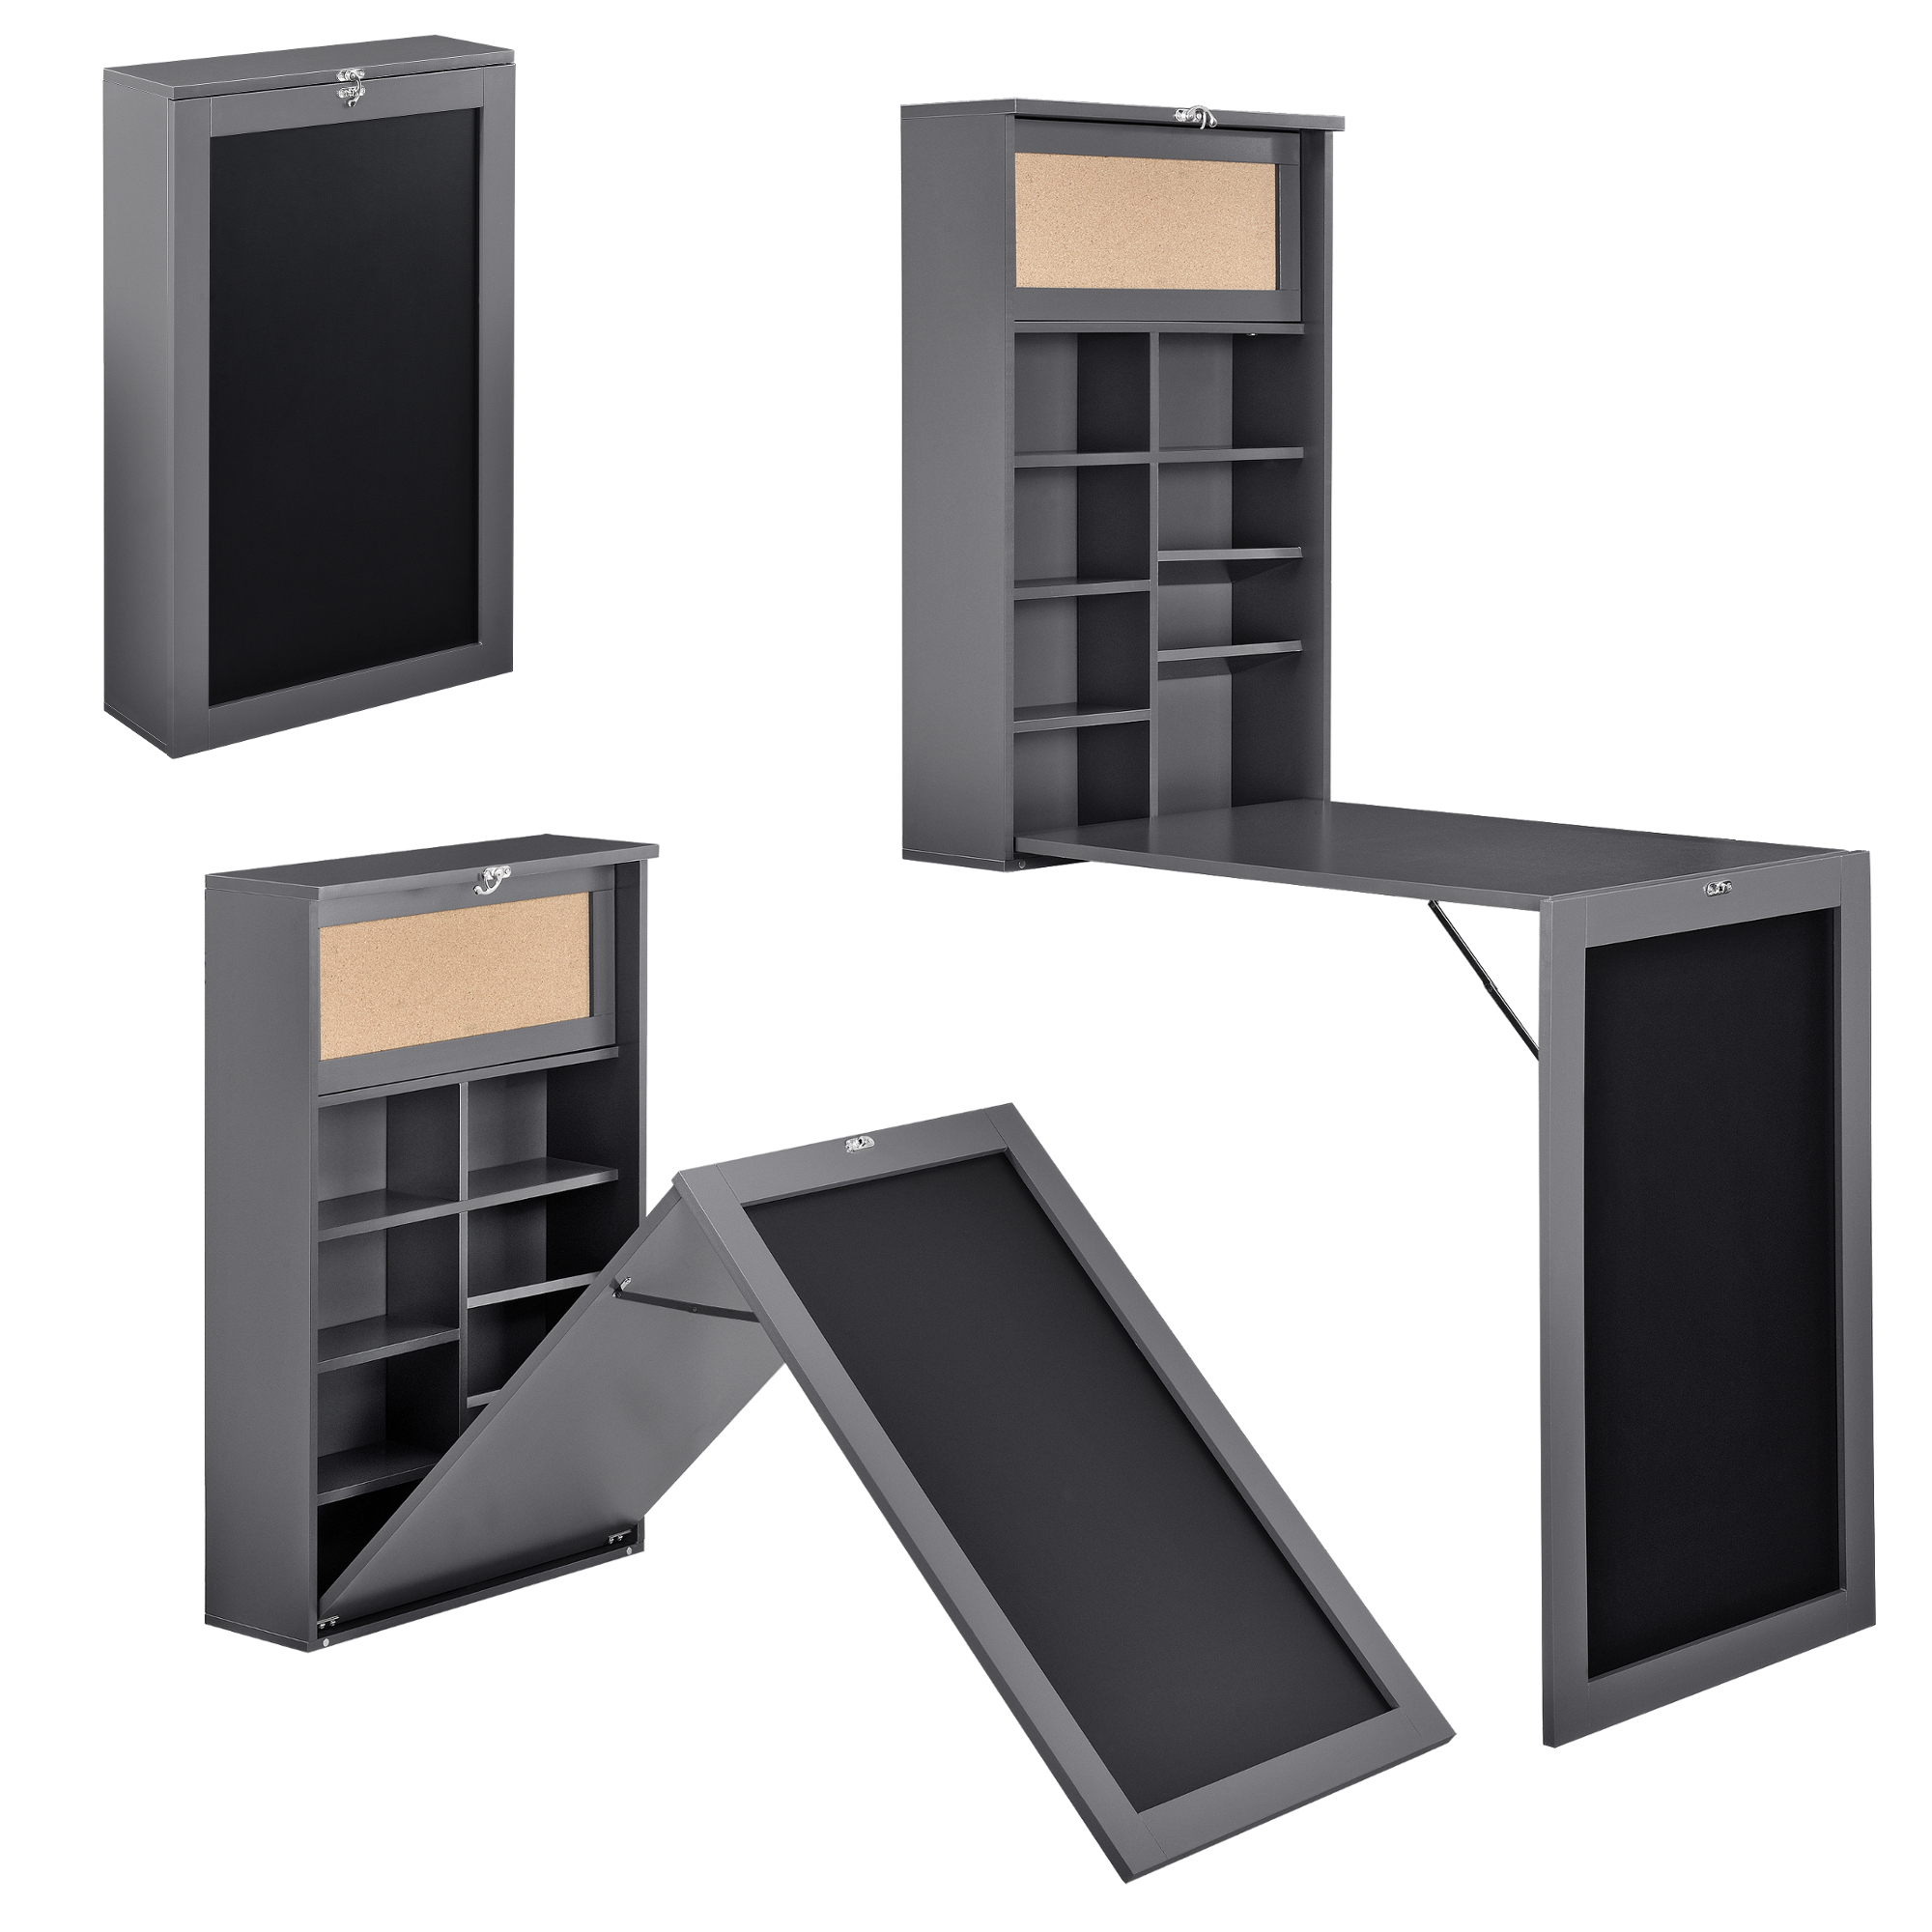 bureau pliable mural bureau pliable mural 50 de rabais offert sur bureau mural serniv de sam. Black Bedroom Furniture Sets. Home Design Ideas